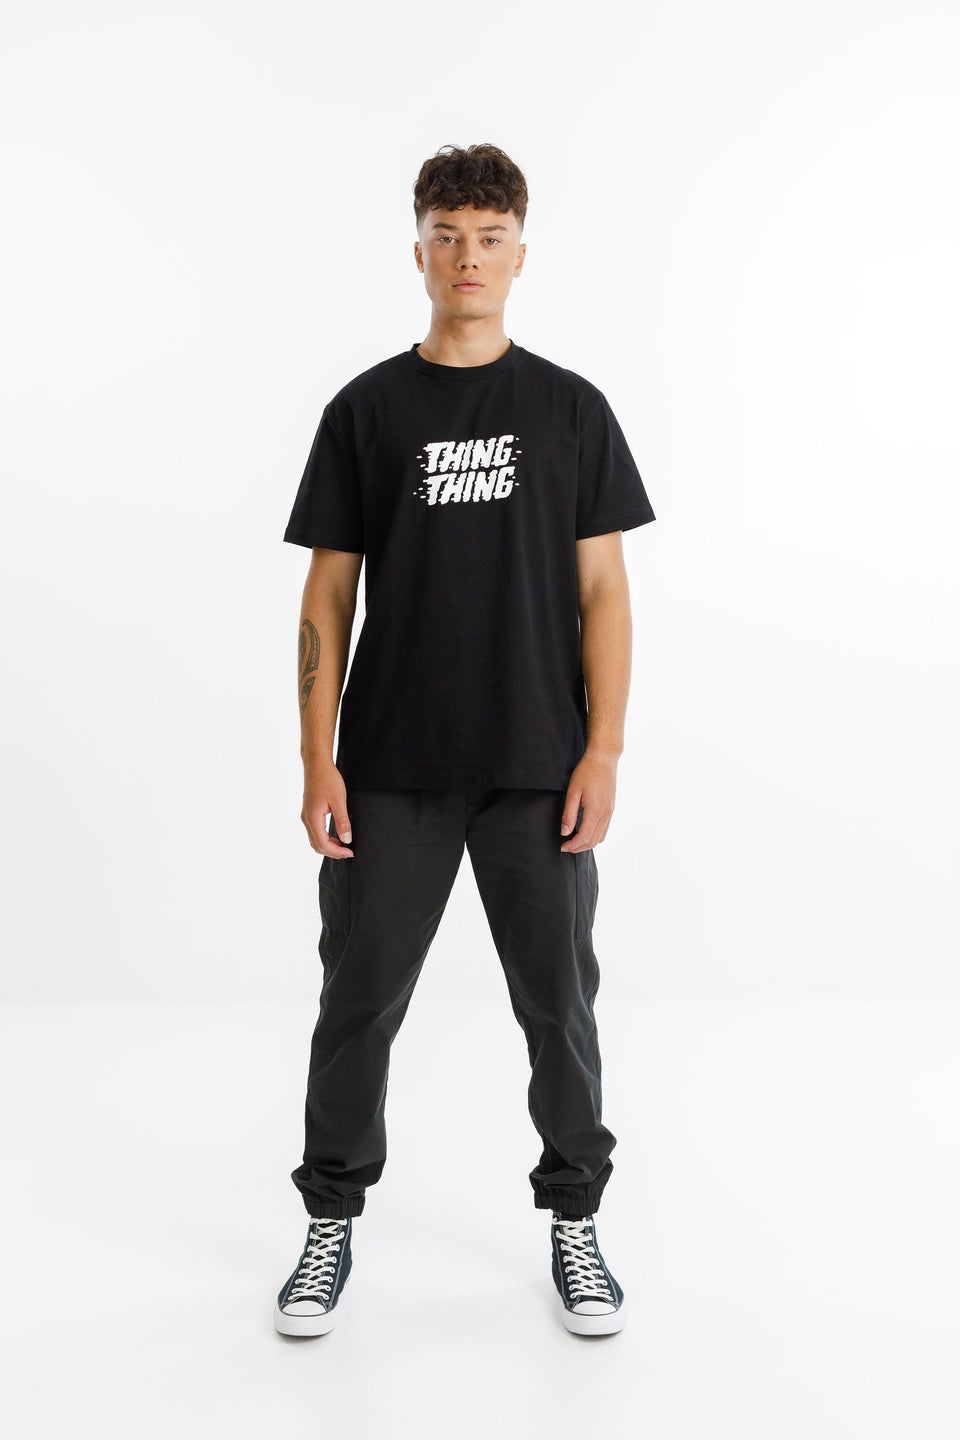 Thing Thing Ground Cargo Black